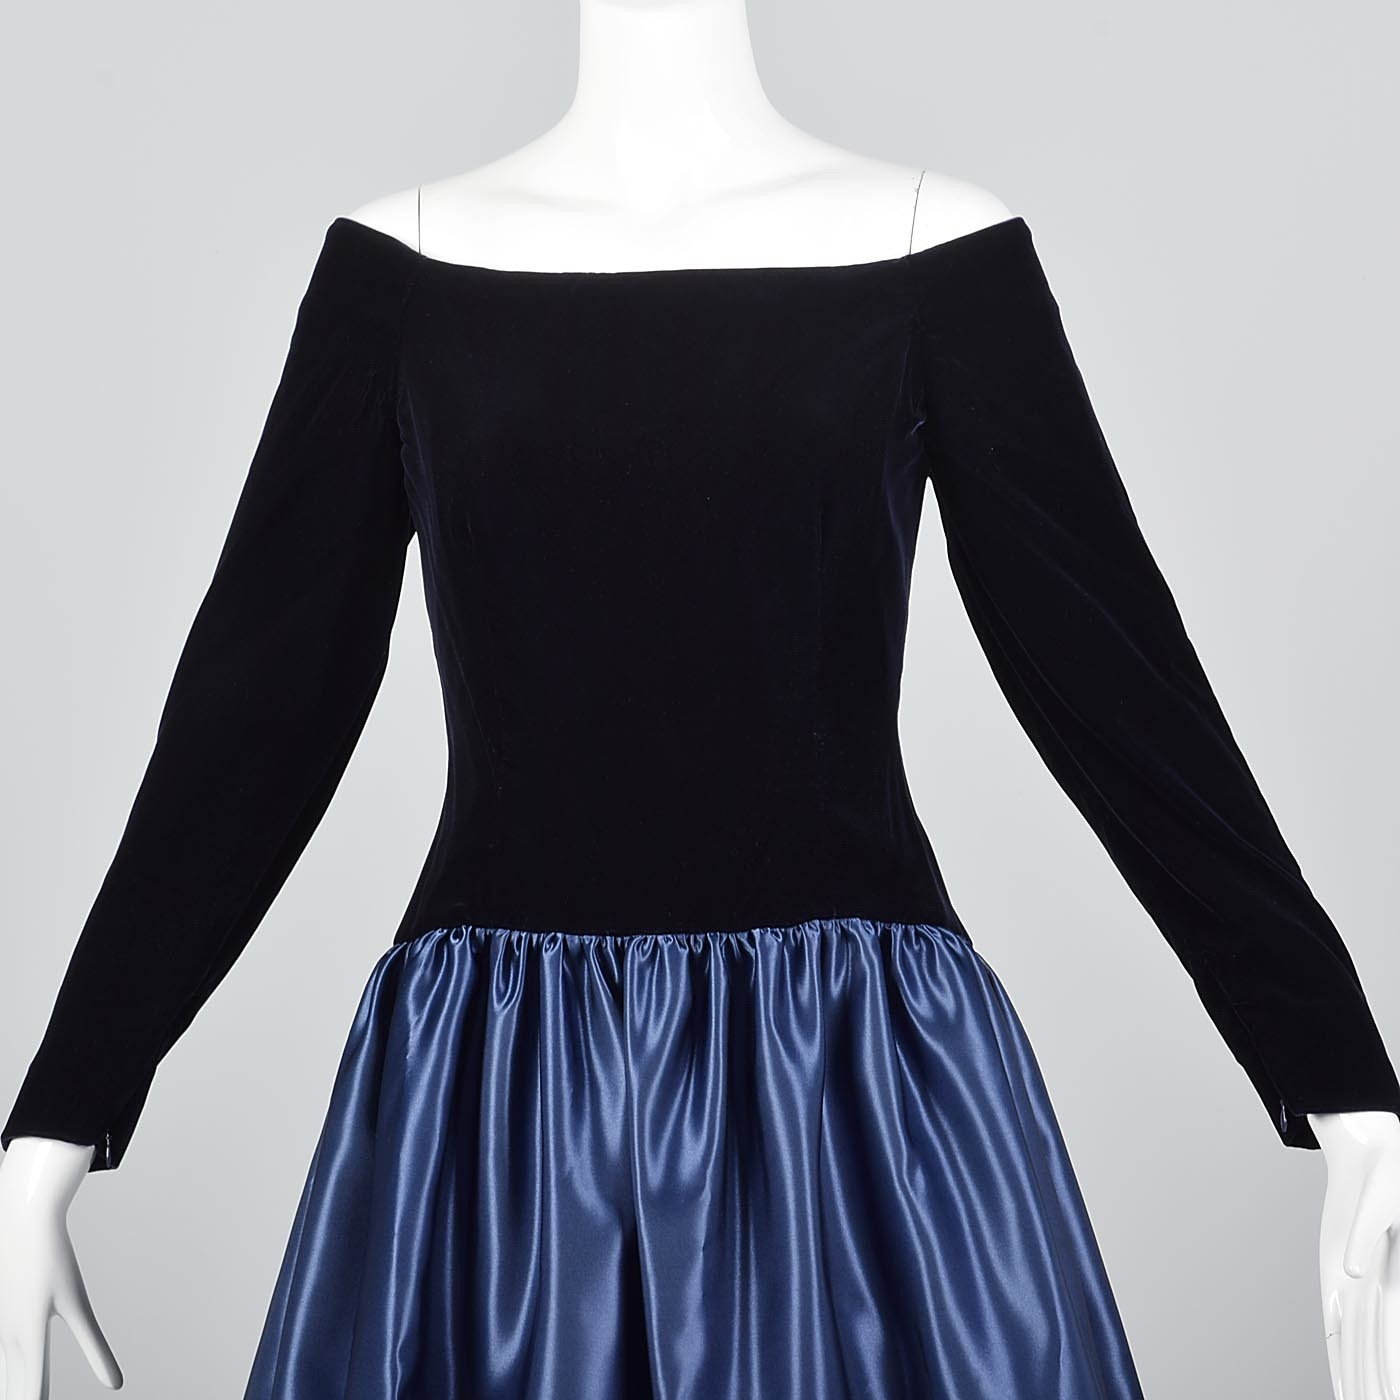 Off Shoulder Scaasi Drop Waist Party Dress in Navy Blue